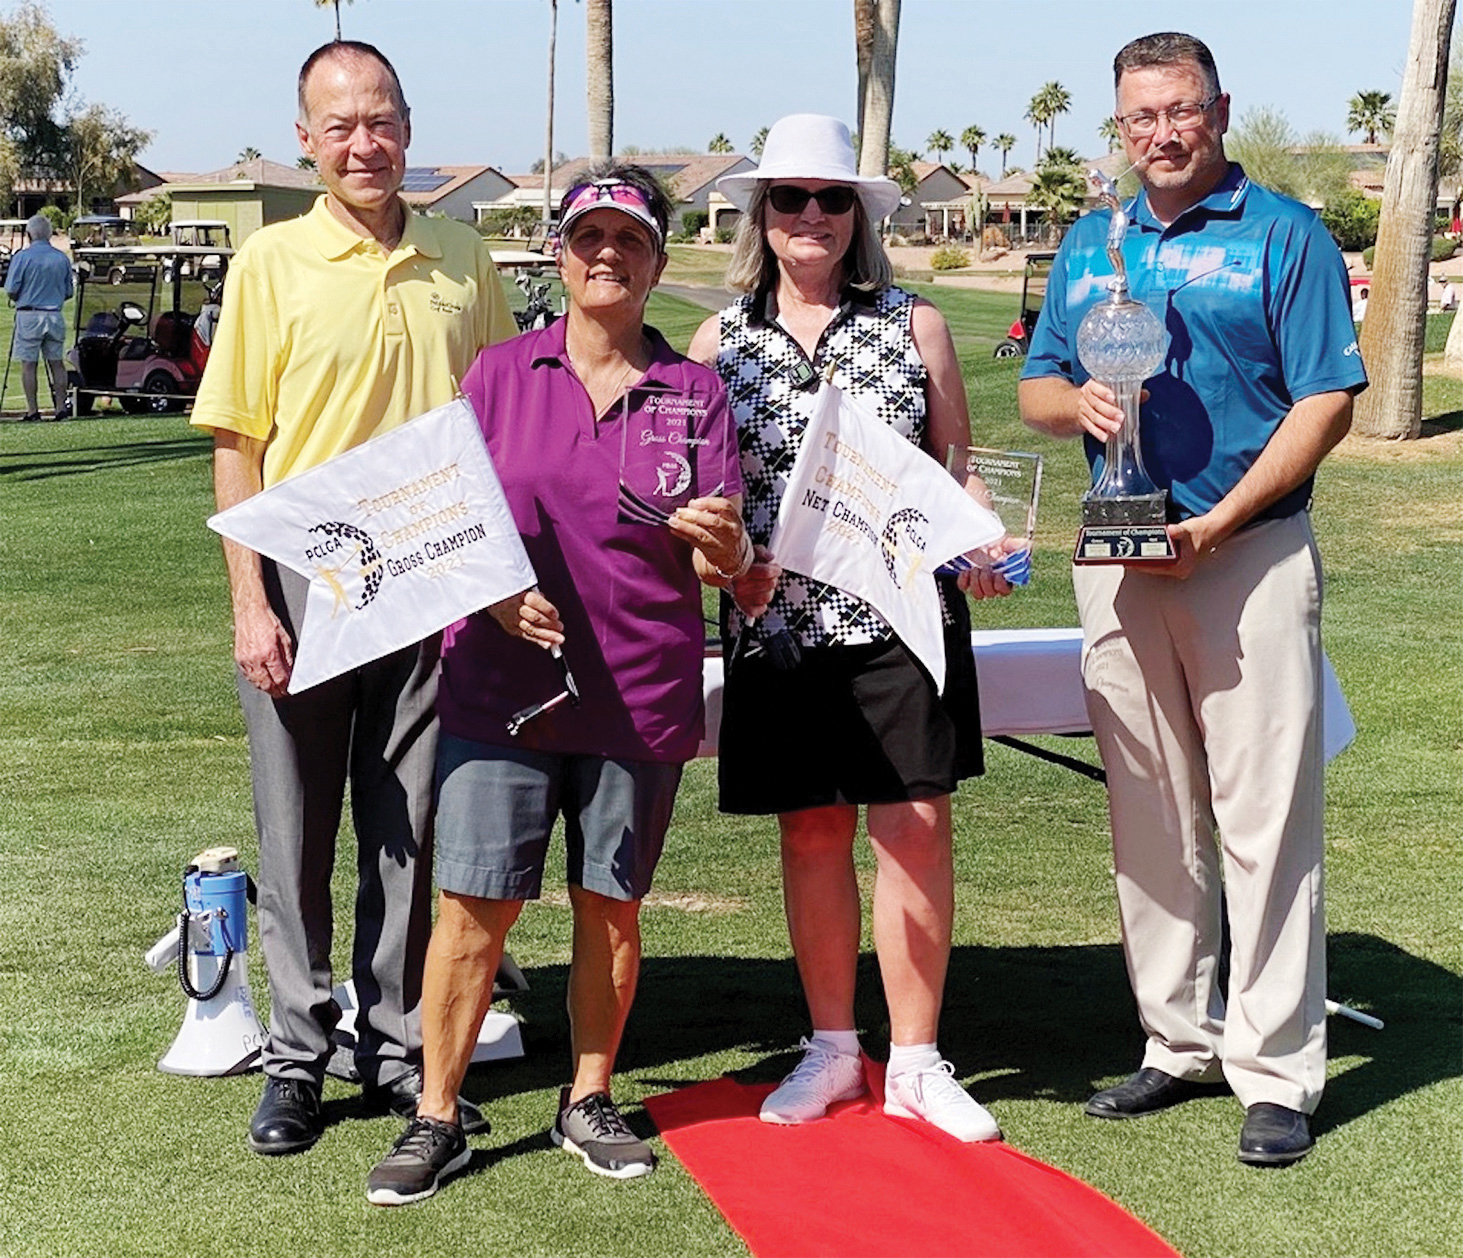 Left to right: Head Pro John McCahan, Gross Champion Andrea Dilger, Net Champion Diana Hull, and Pro Ronnie Decker